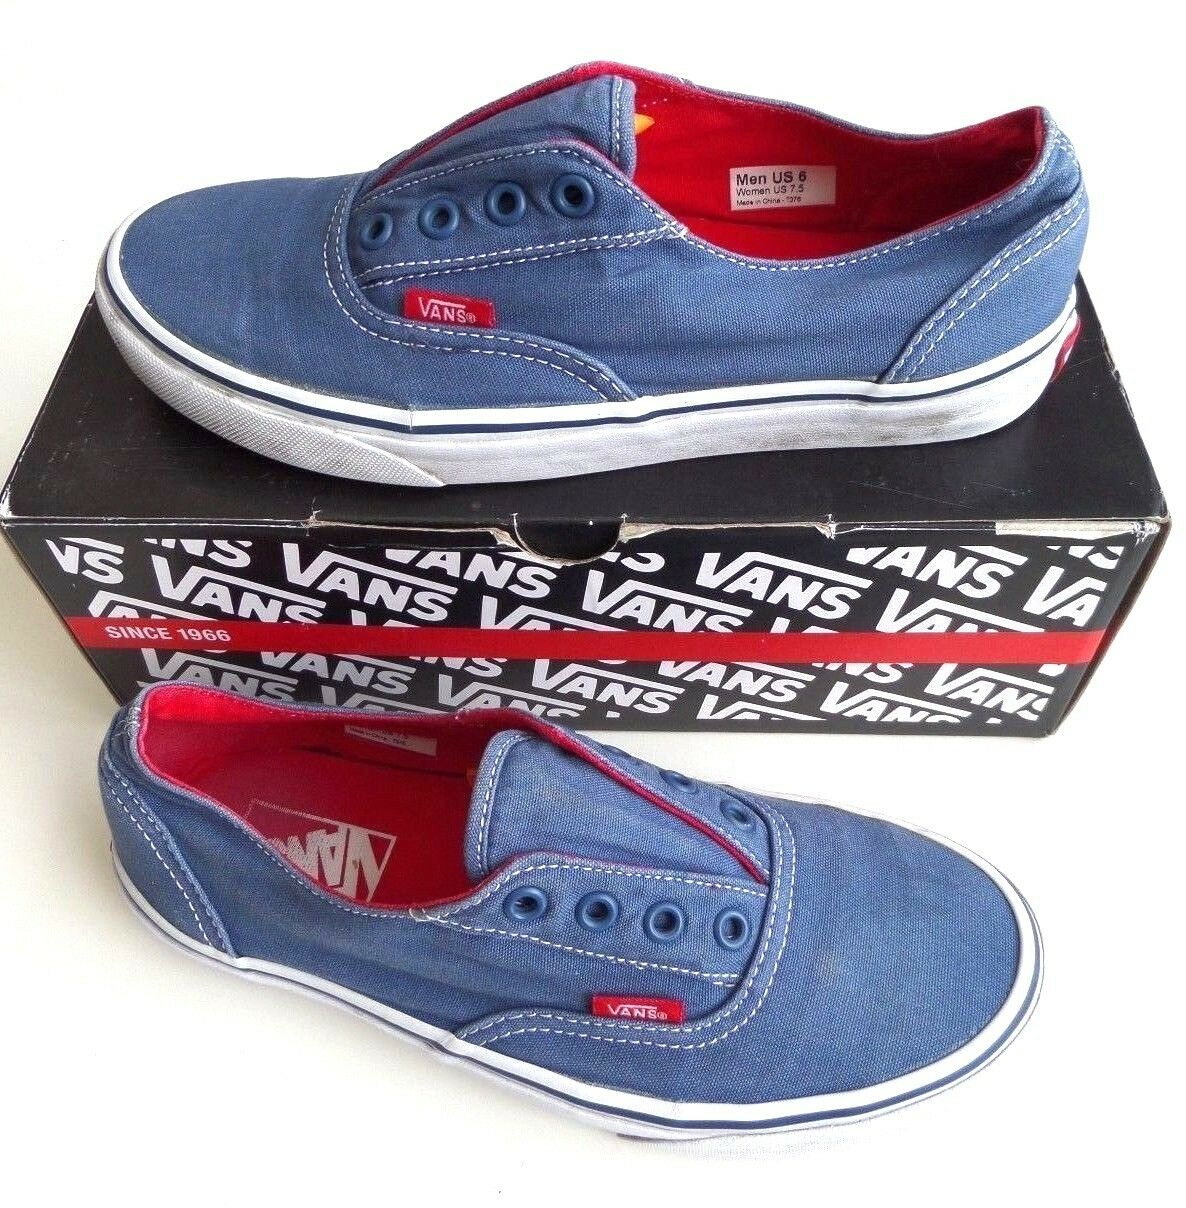 Vans Authentic bluee White Lo Pro Red Sole Lace-Less Men's 6 Women's 7.5